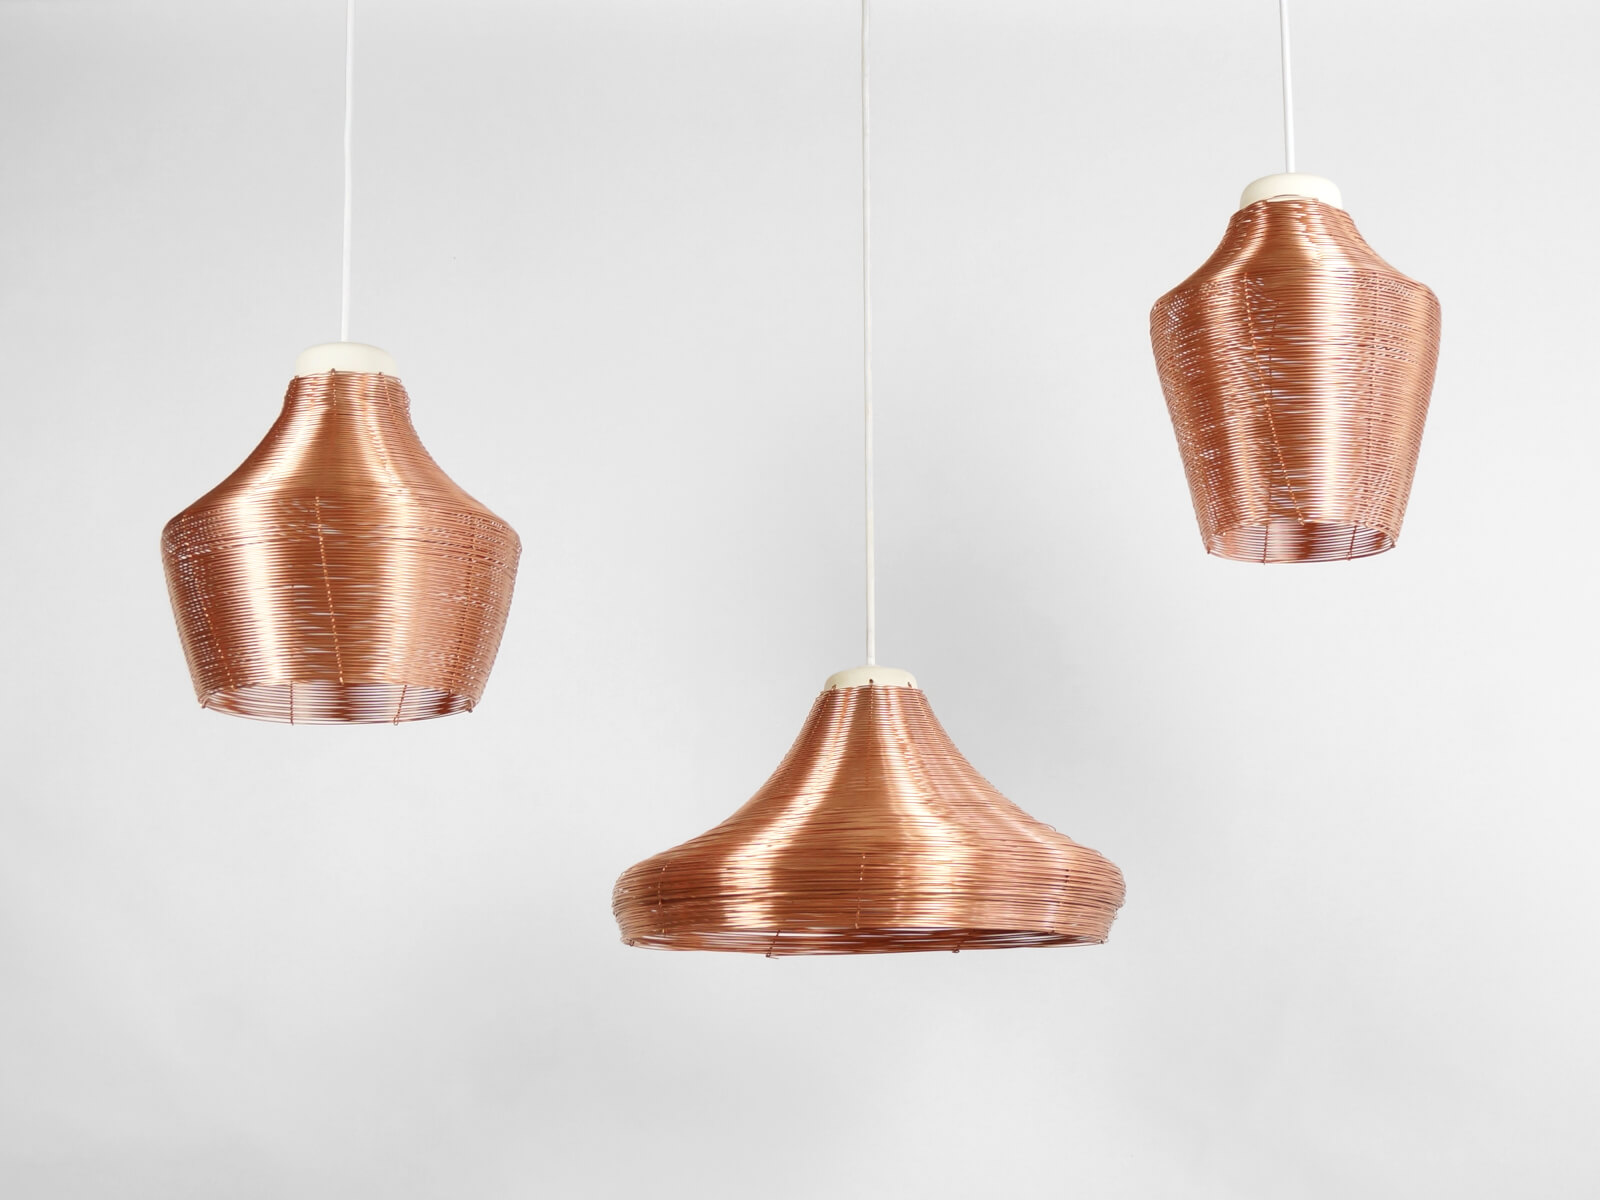 Copper pendant lamp studio lorier copper pendant lamp 32600 mozeypictures Choice Image